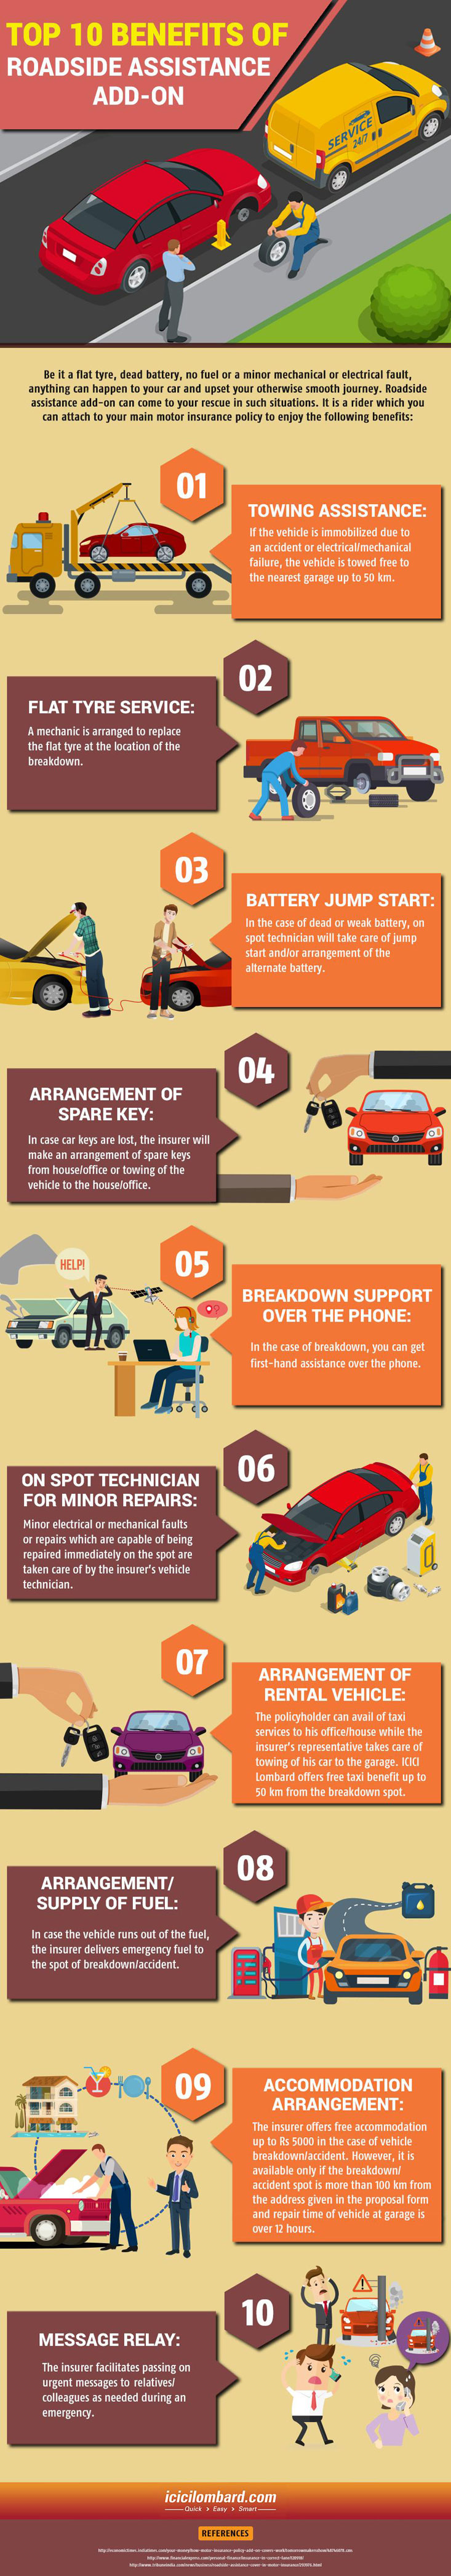 Top 10 Benefits of Roadside Assistance (RSA) Add-on